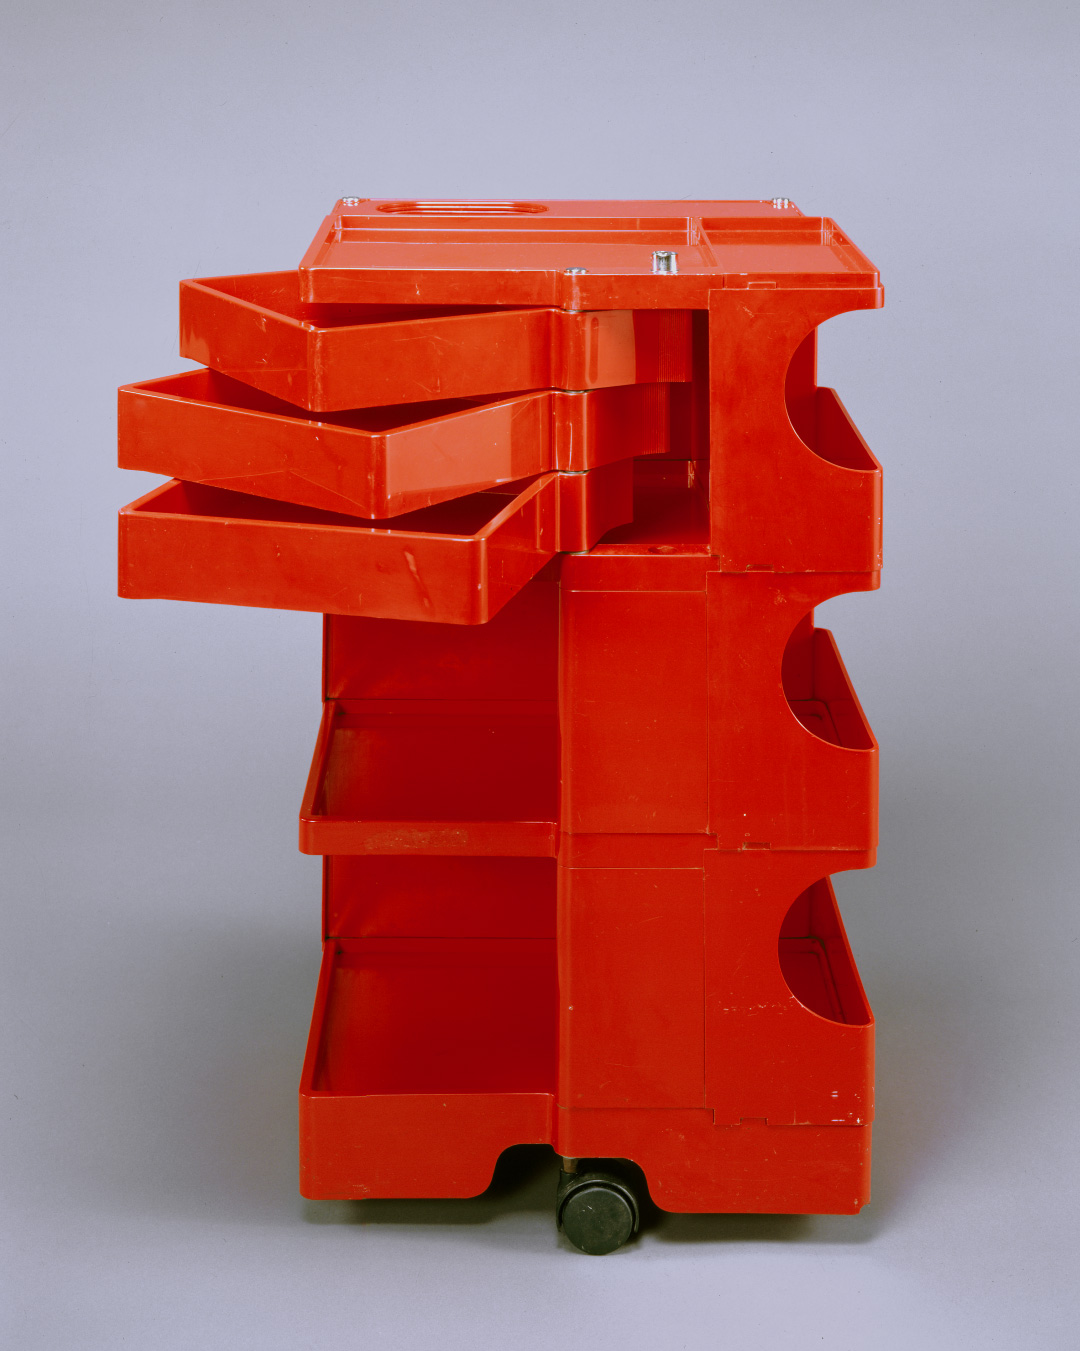 Red plastic storage cart on black wheels with multiple shelves, compartments, and swiveling drawers.